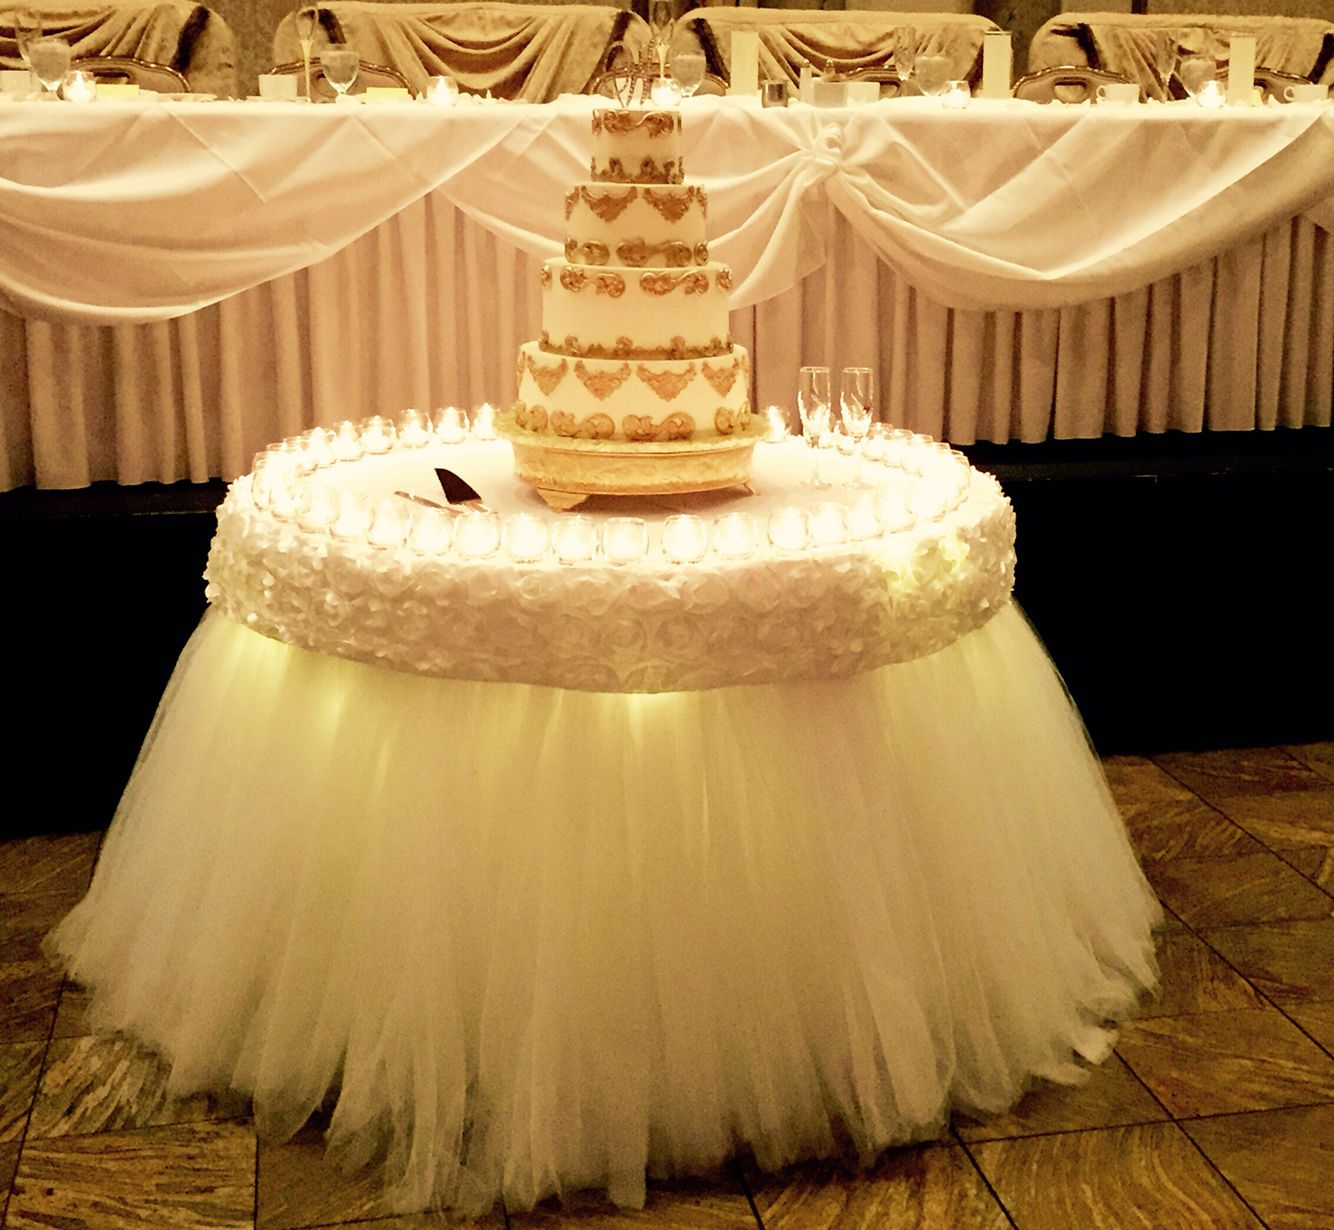 Buffet table skirting - Tulle Table Skirt With Rosette Trimming Made By Glam Candy Buffets